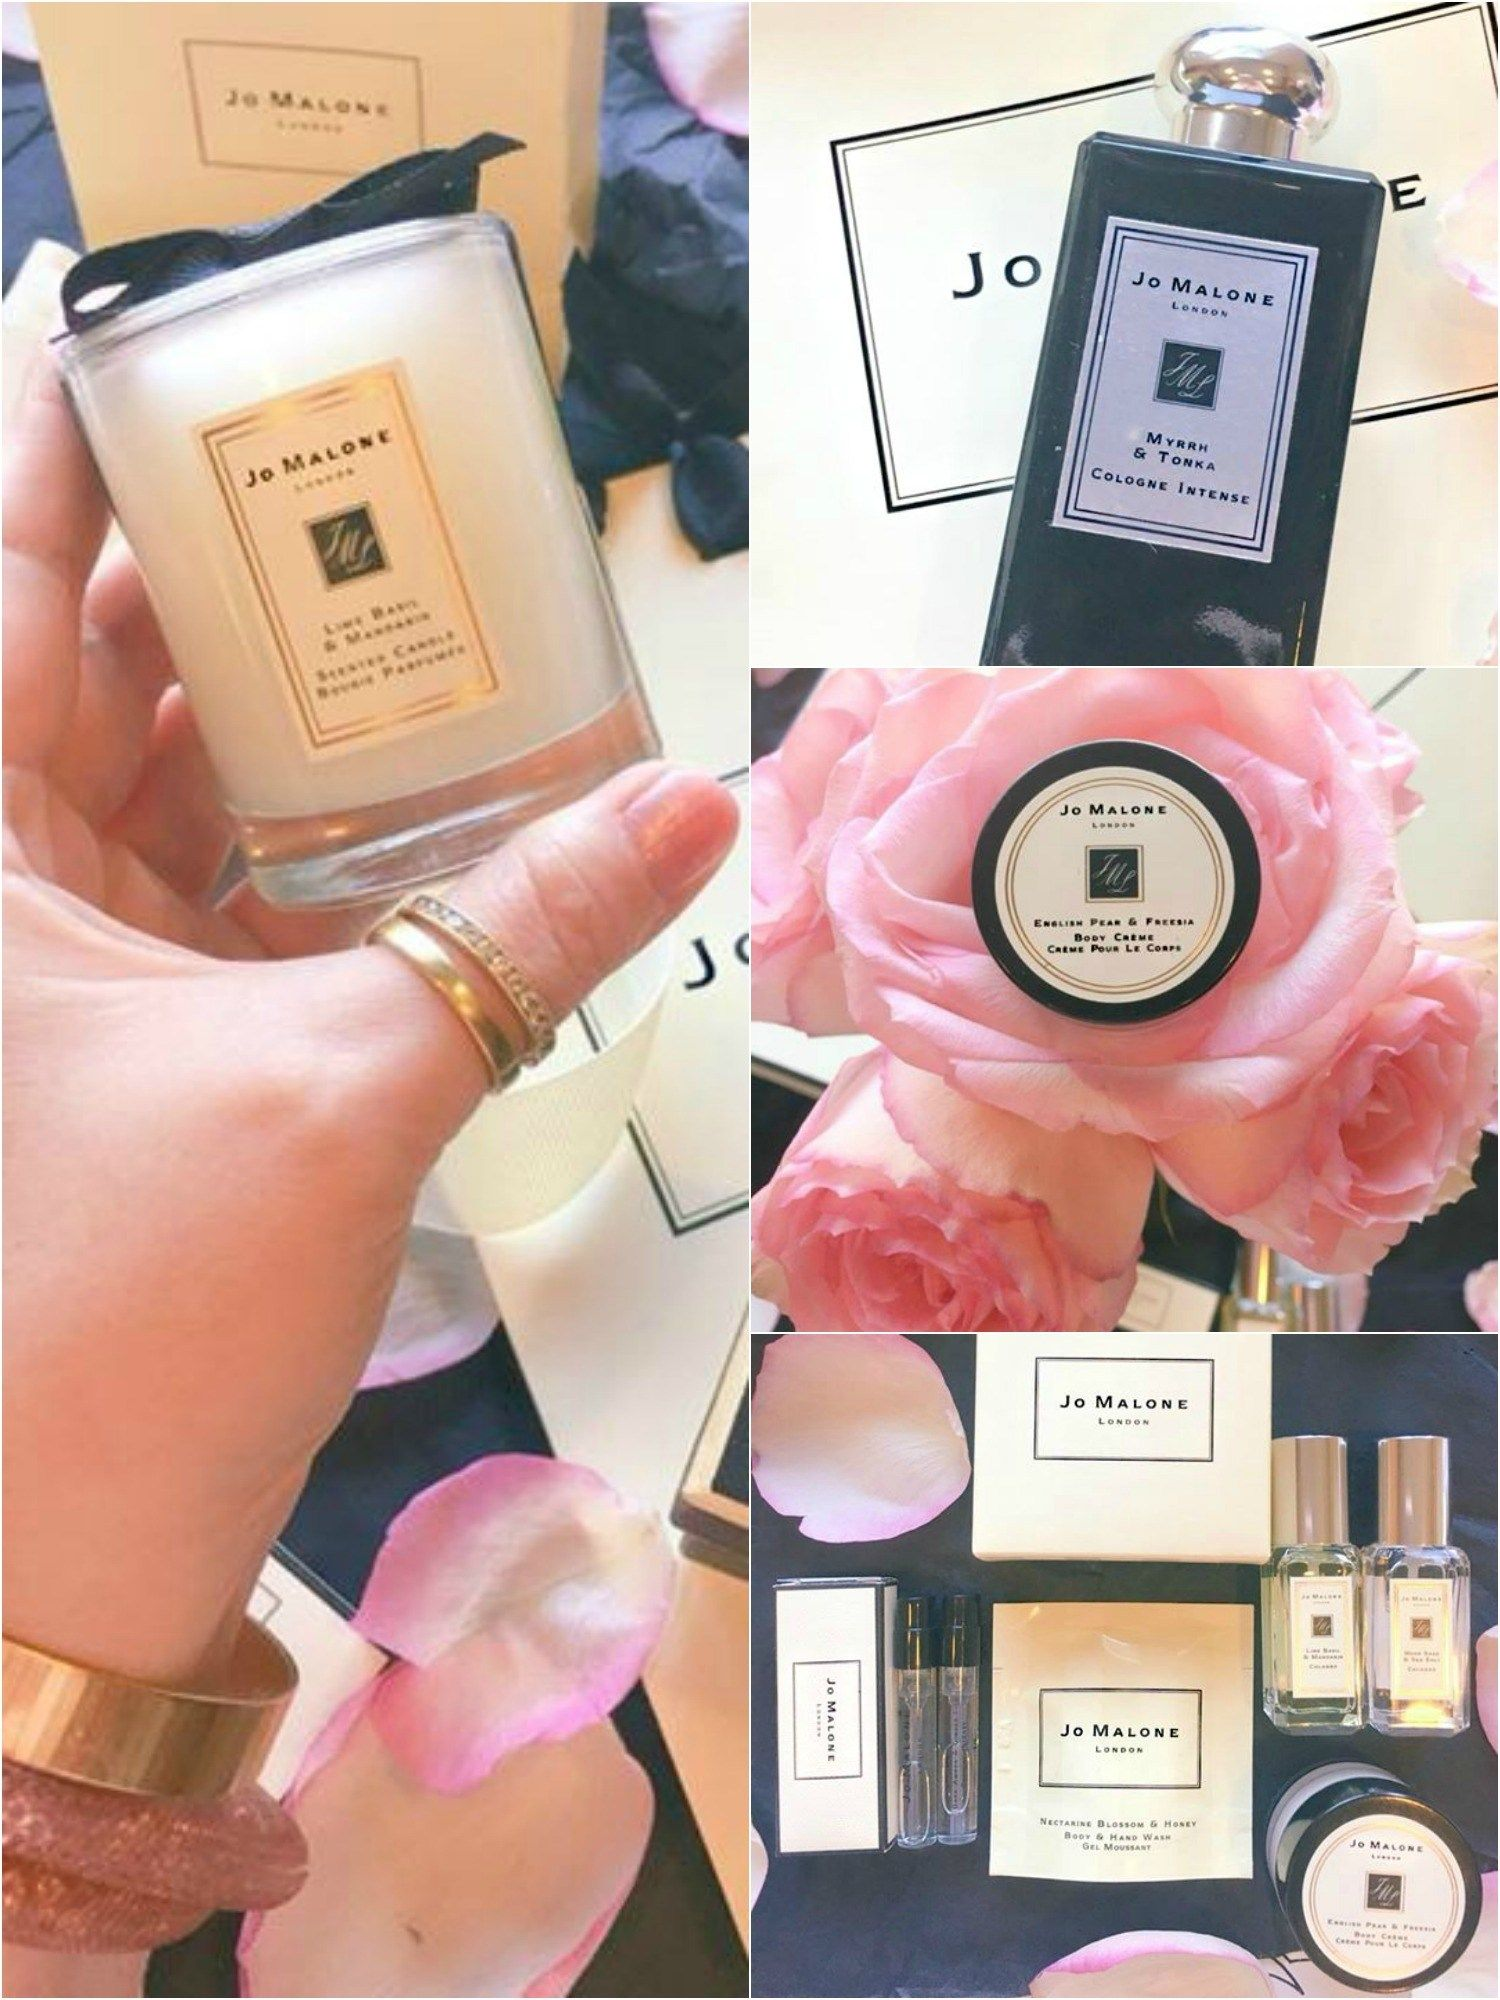 Jo Malone   Beauty haul   Cologne   Product review   Pink